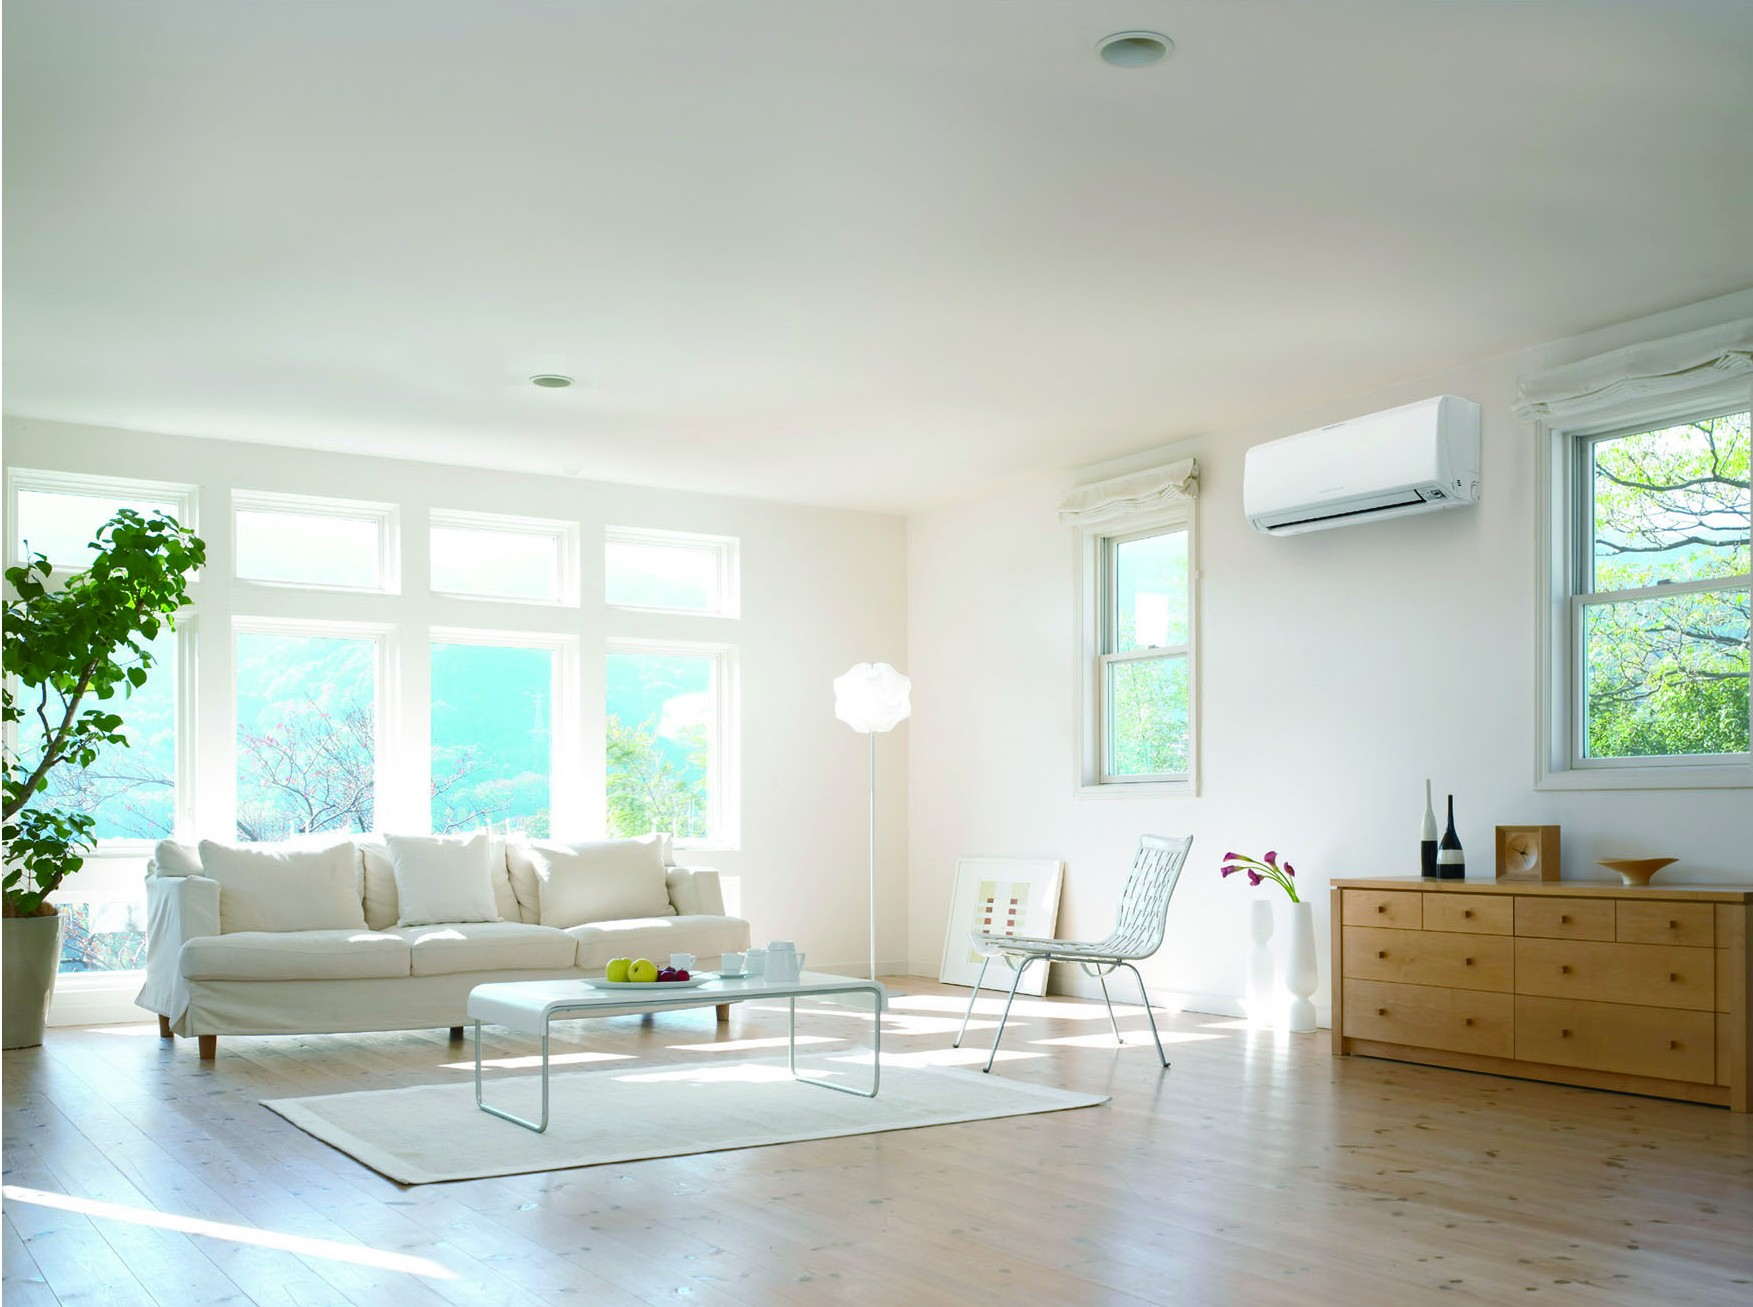 altec group air condition - altec group